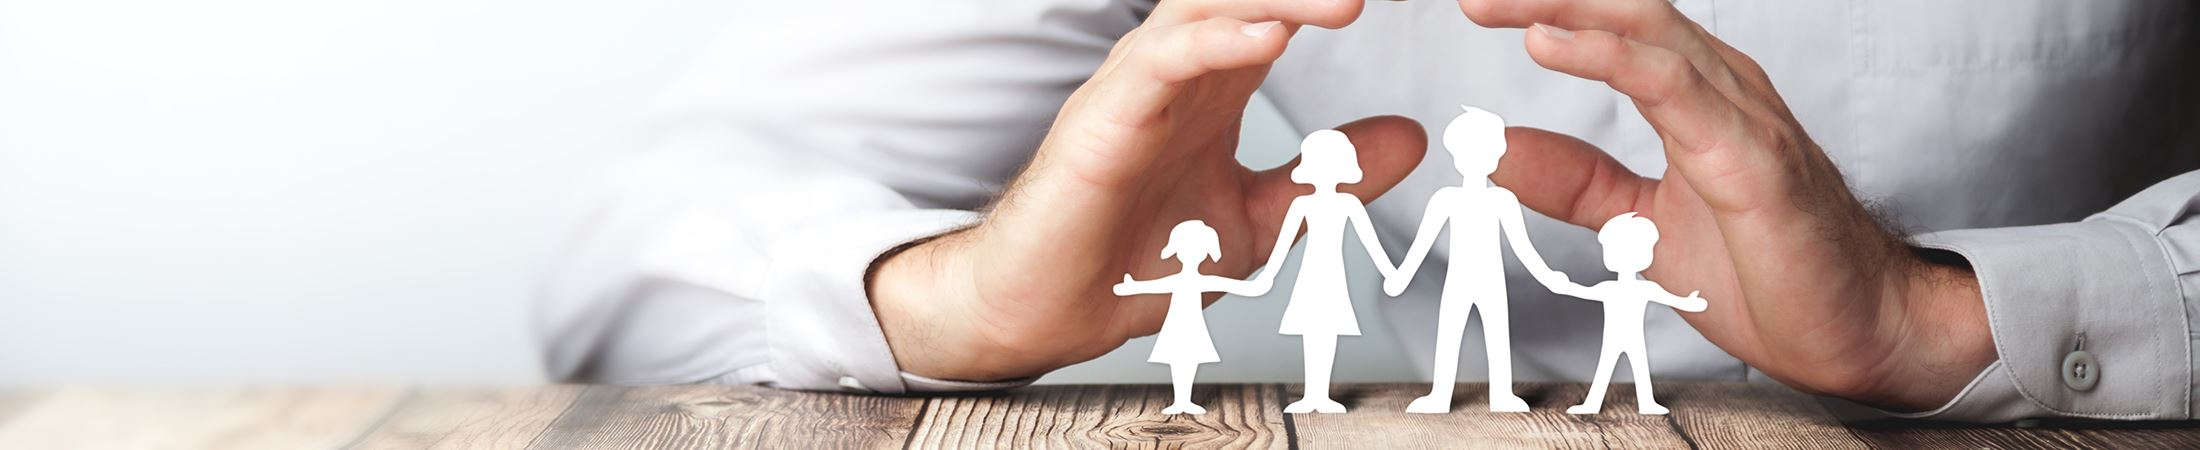 hands sheltering paper cut out of family